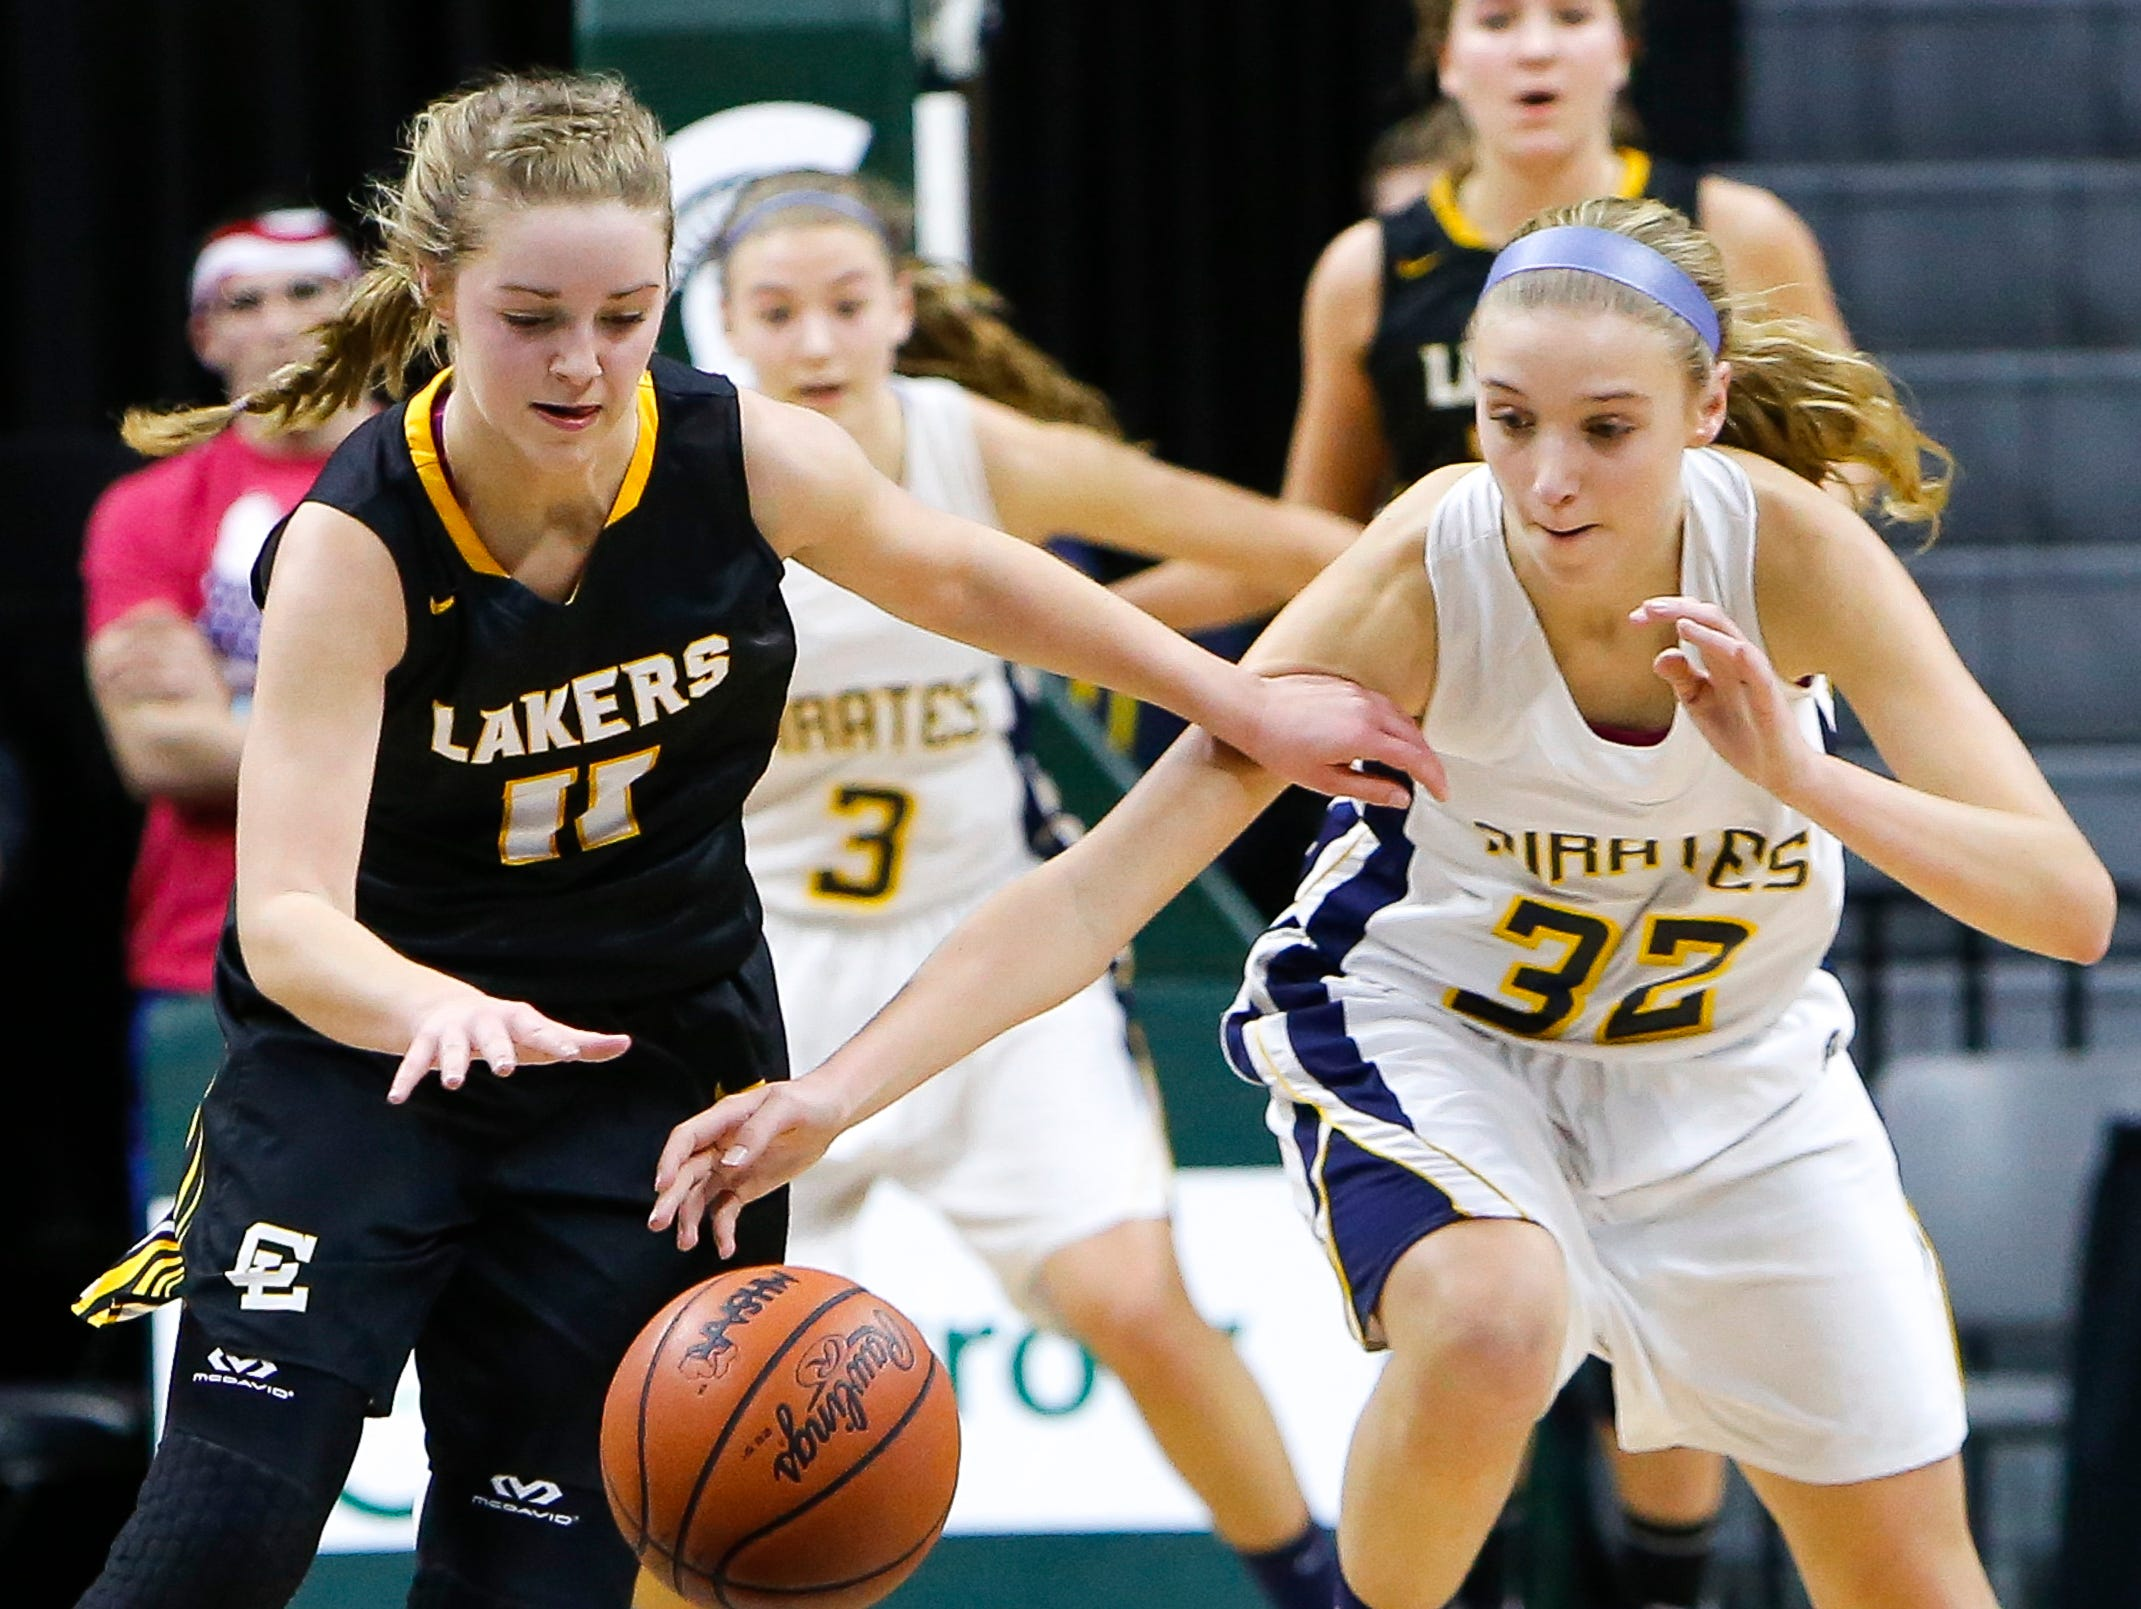 P-W's Emily Spitzley tries to take the ball away from Allie Bonzelet of Maple City Glen Lake Thursday, March 16, 2017, during the Class B Semifinal at the Breslin in East Lansing. P-W won 64-51.